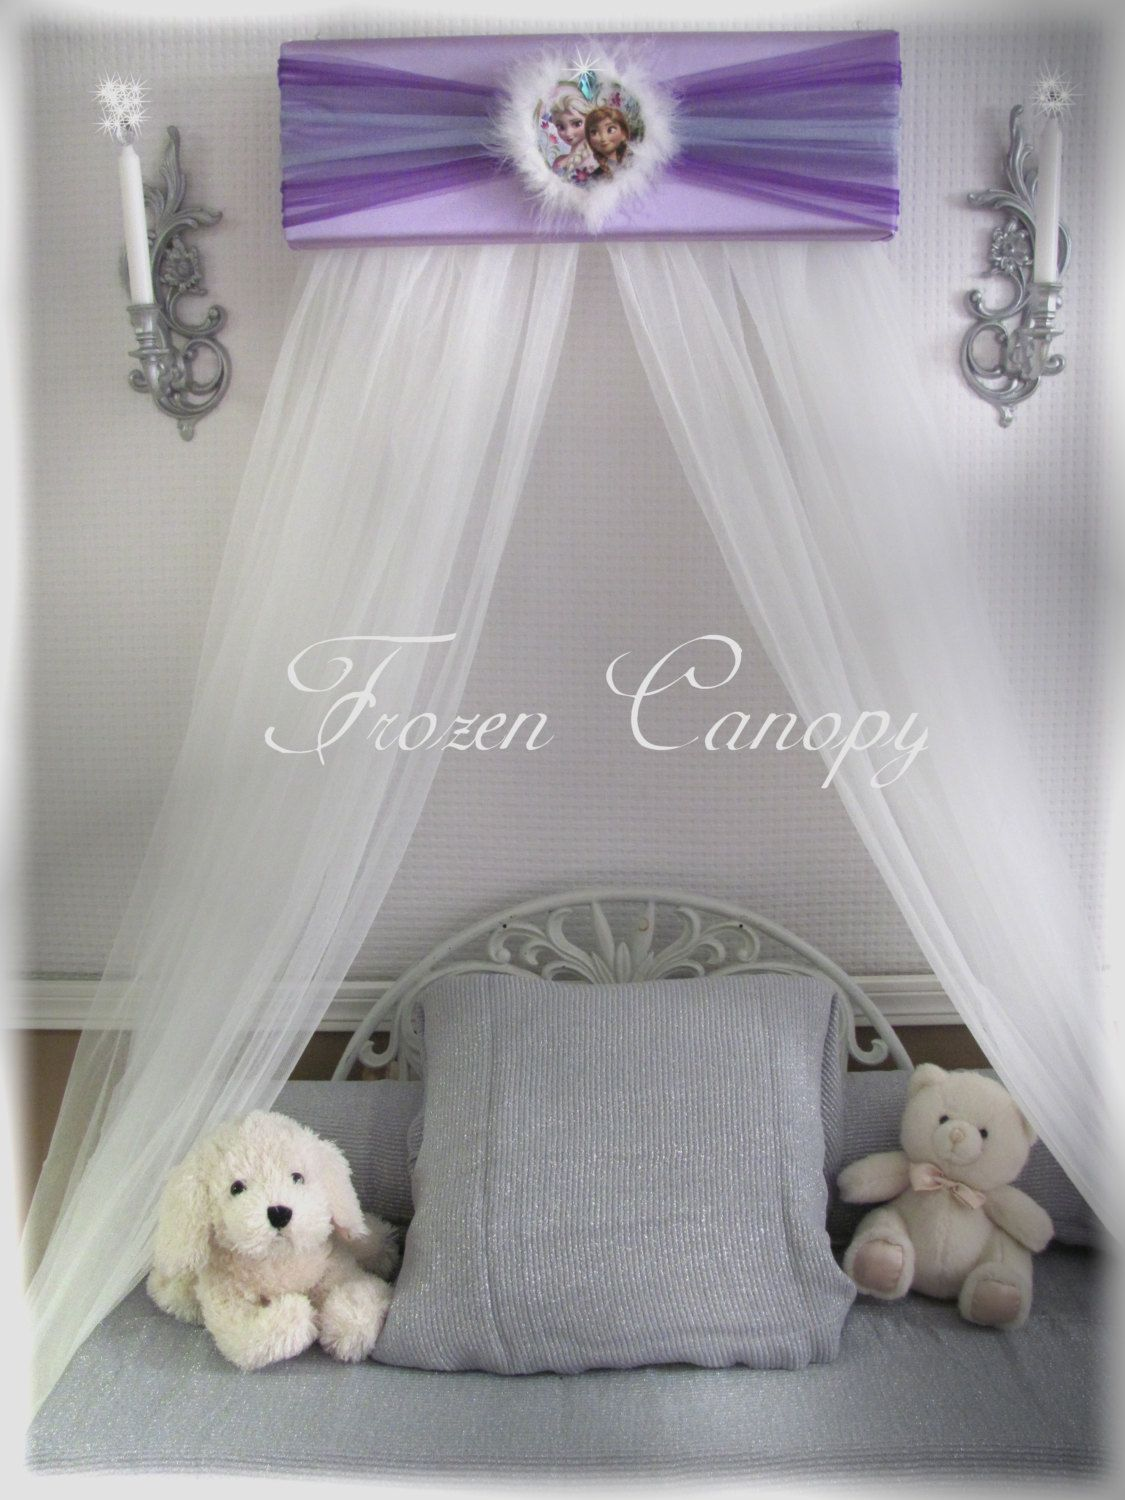 FrOzEn Disney Bed Canopy CrOwN Pelmet Upholstered Awning SaLe Lavender Purple Blue by SoZoeyBoutique on Etsy & FrOzEn Disney Bed Canopy CrOwN Pelmet Upholstered Awning SaLe ...